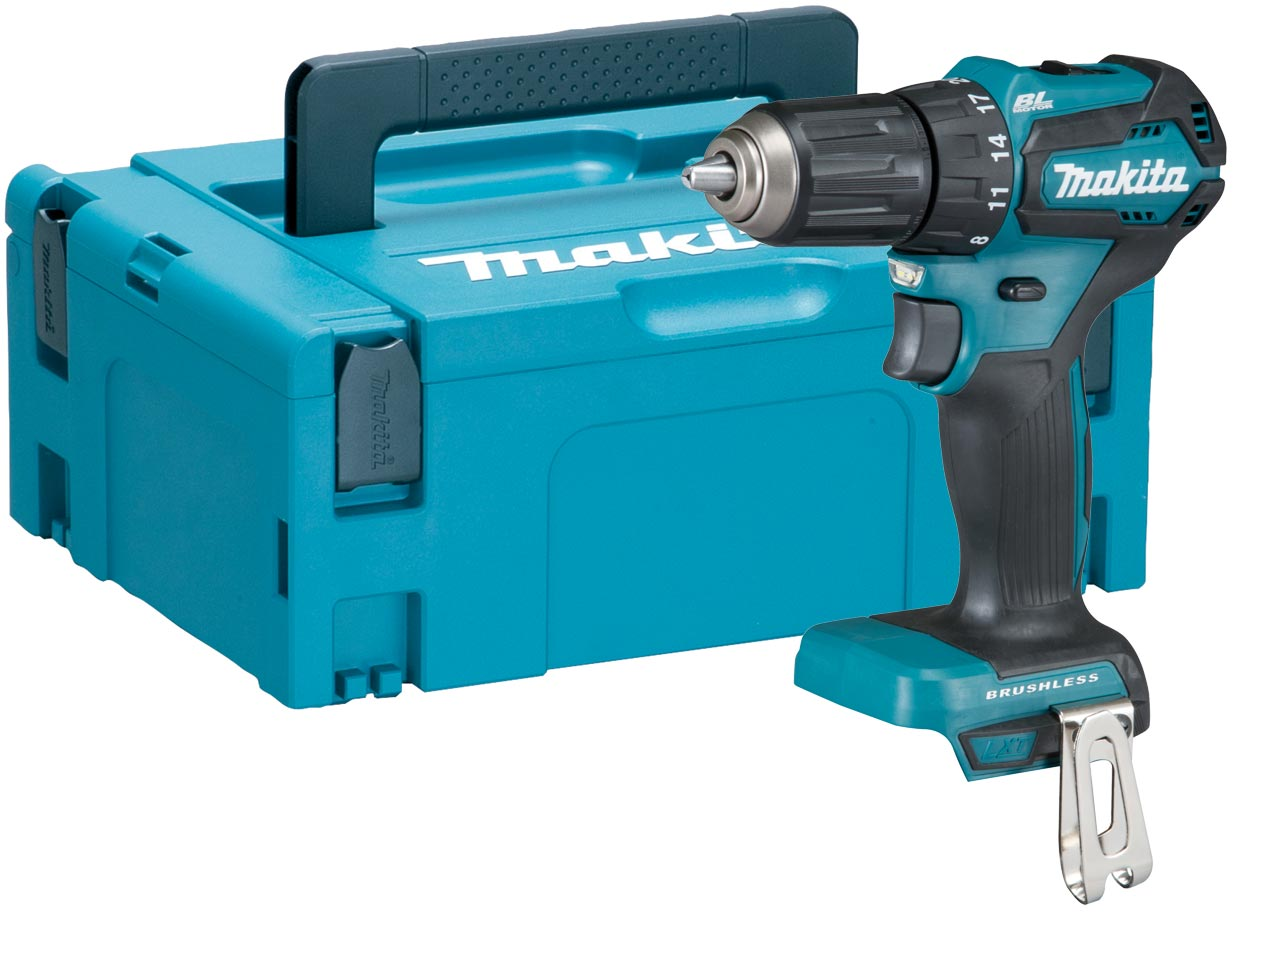 makita ddf483zj 18v lxt li ion brushless drill driver bare unit makpac ebay. Black Bedroom Furniture Sets. Home Design Ideas